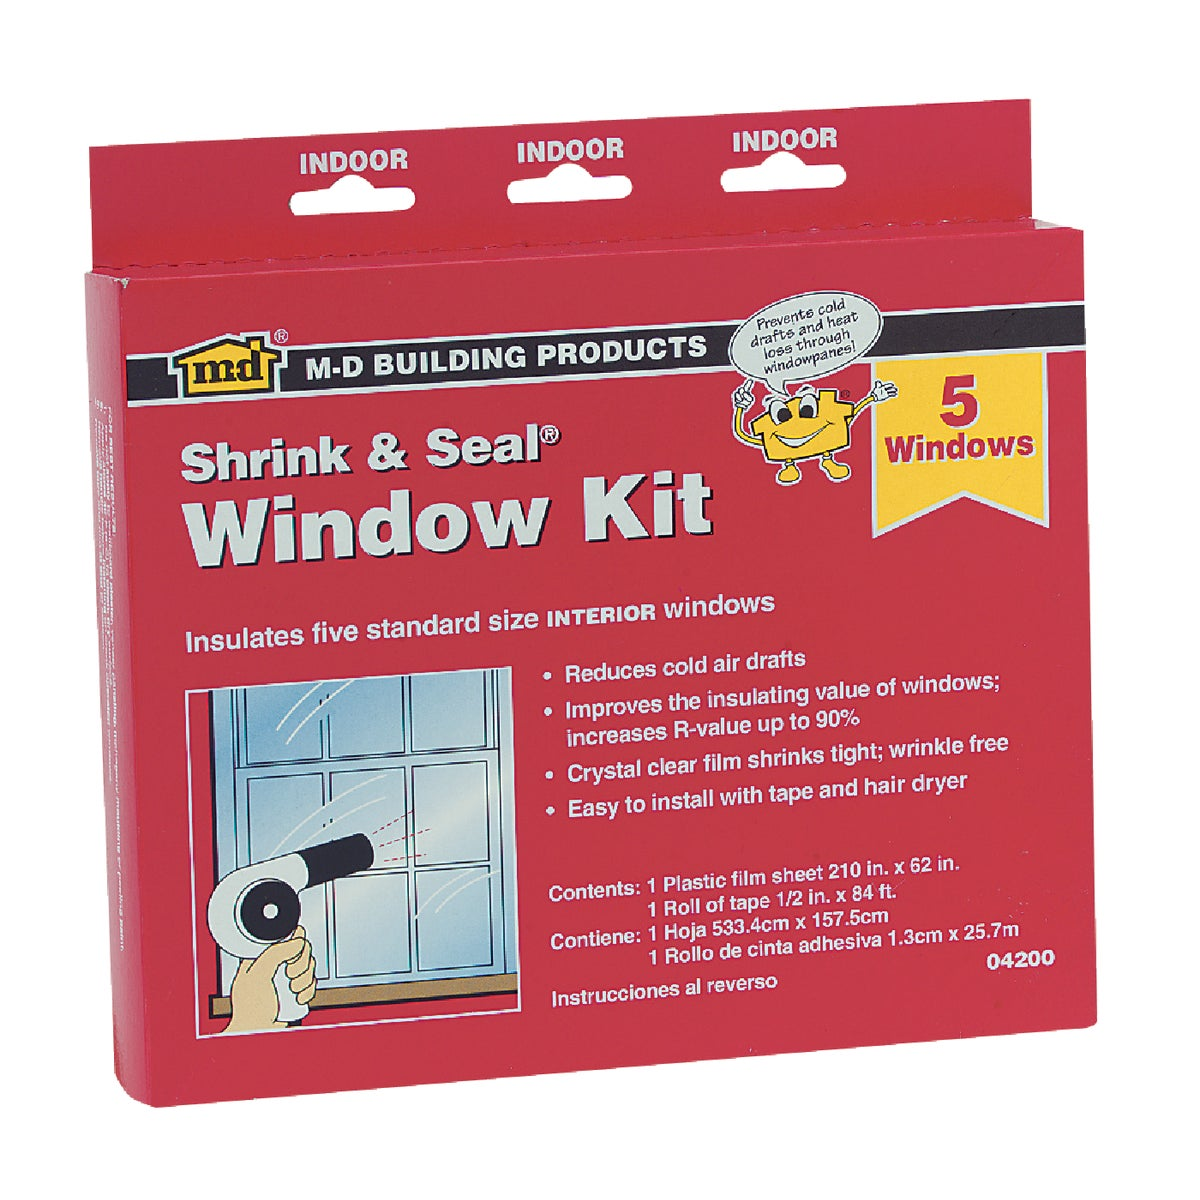 SHRINK&SEAL 5-WINDOW KIT